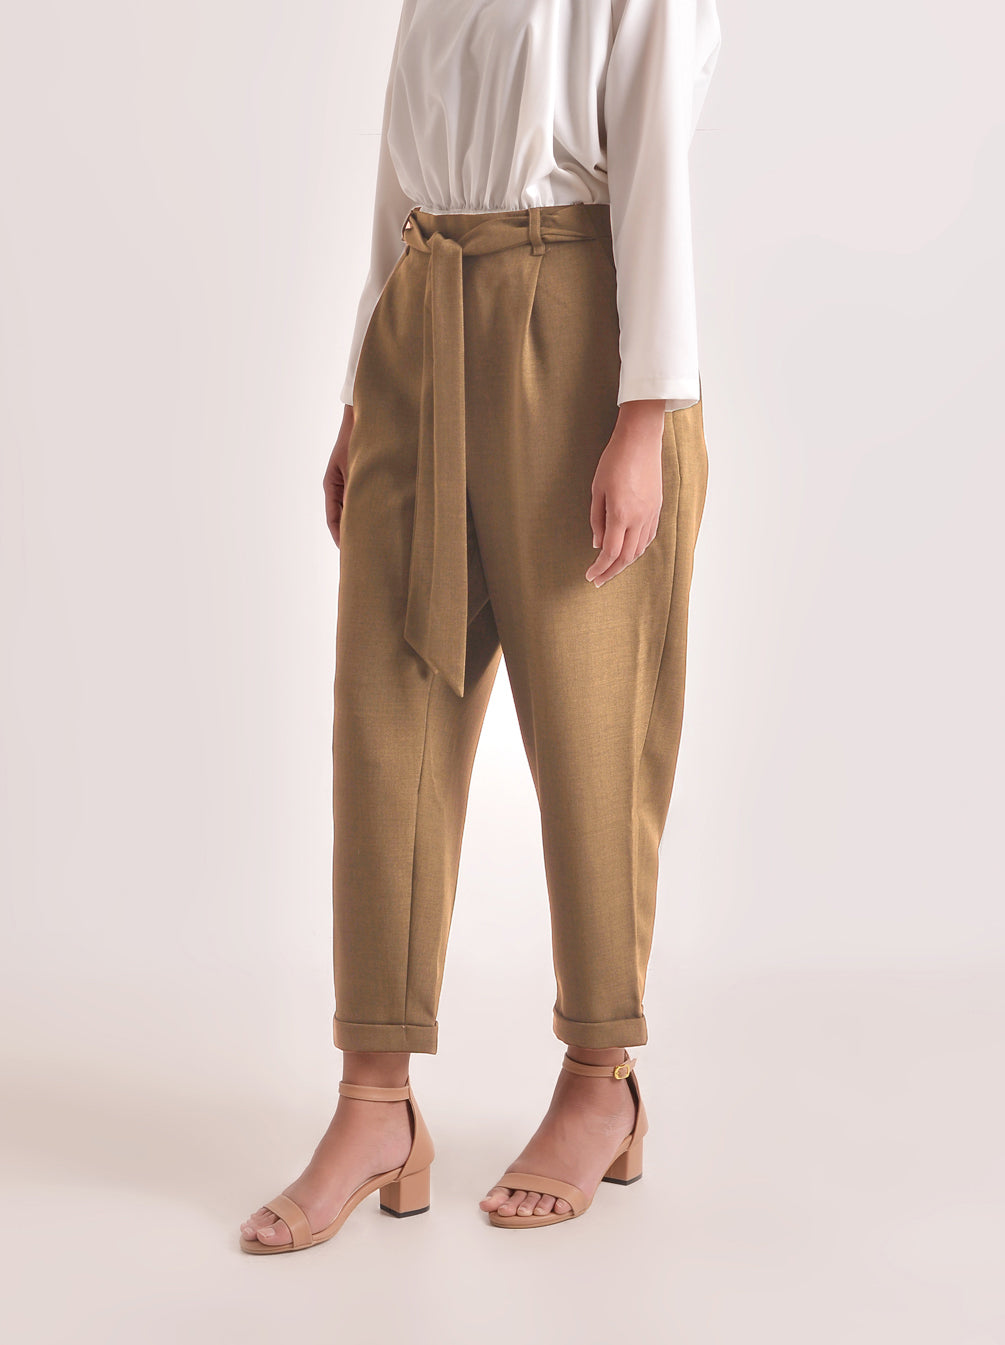 NEW SOJA PANTS SUN VANILLA